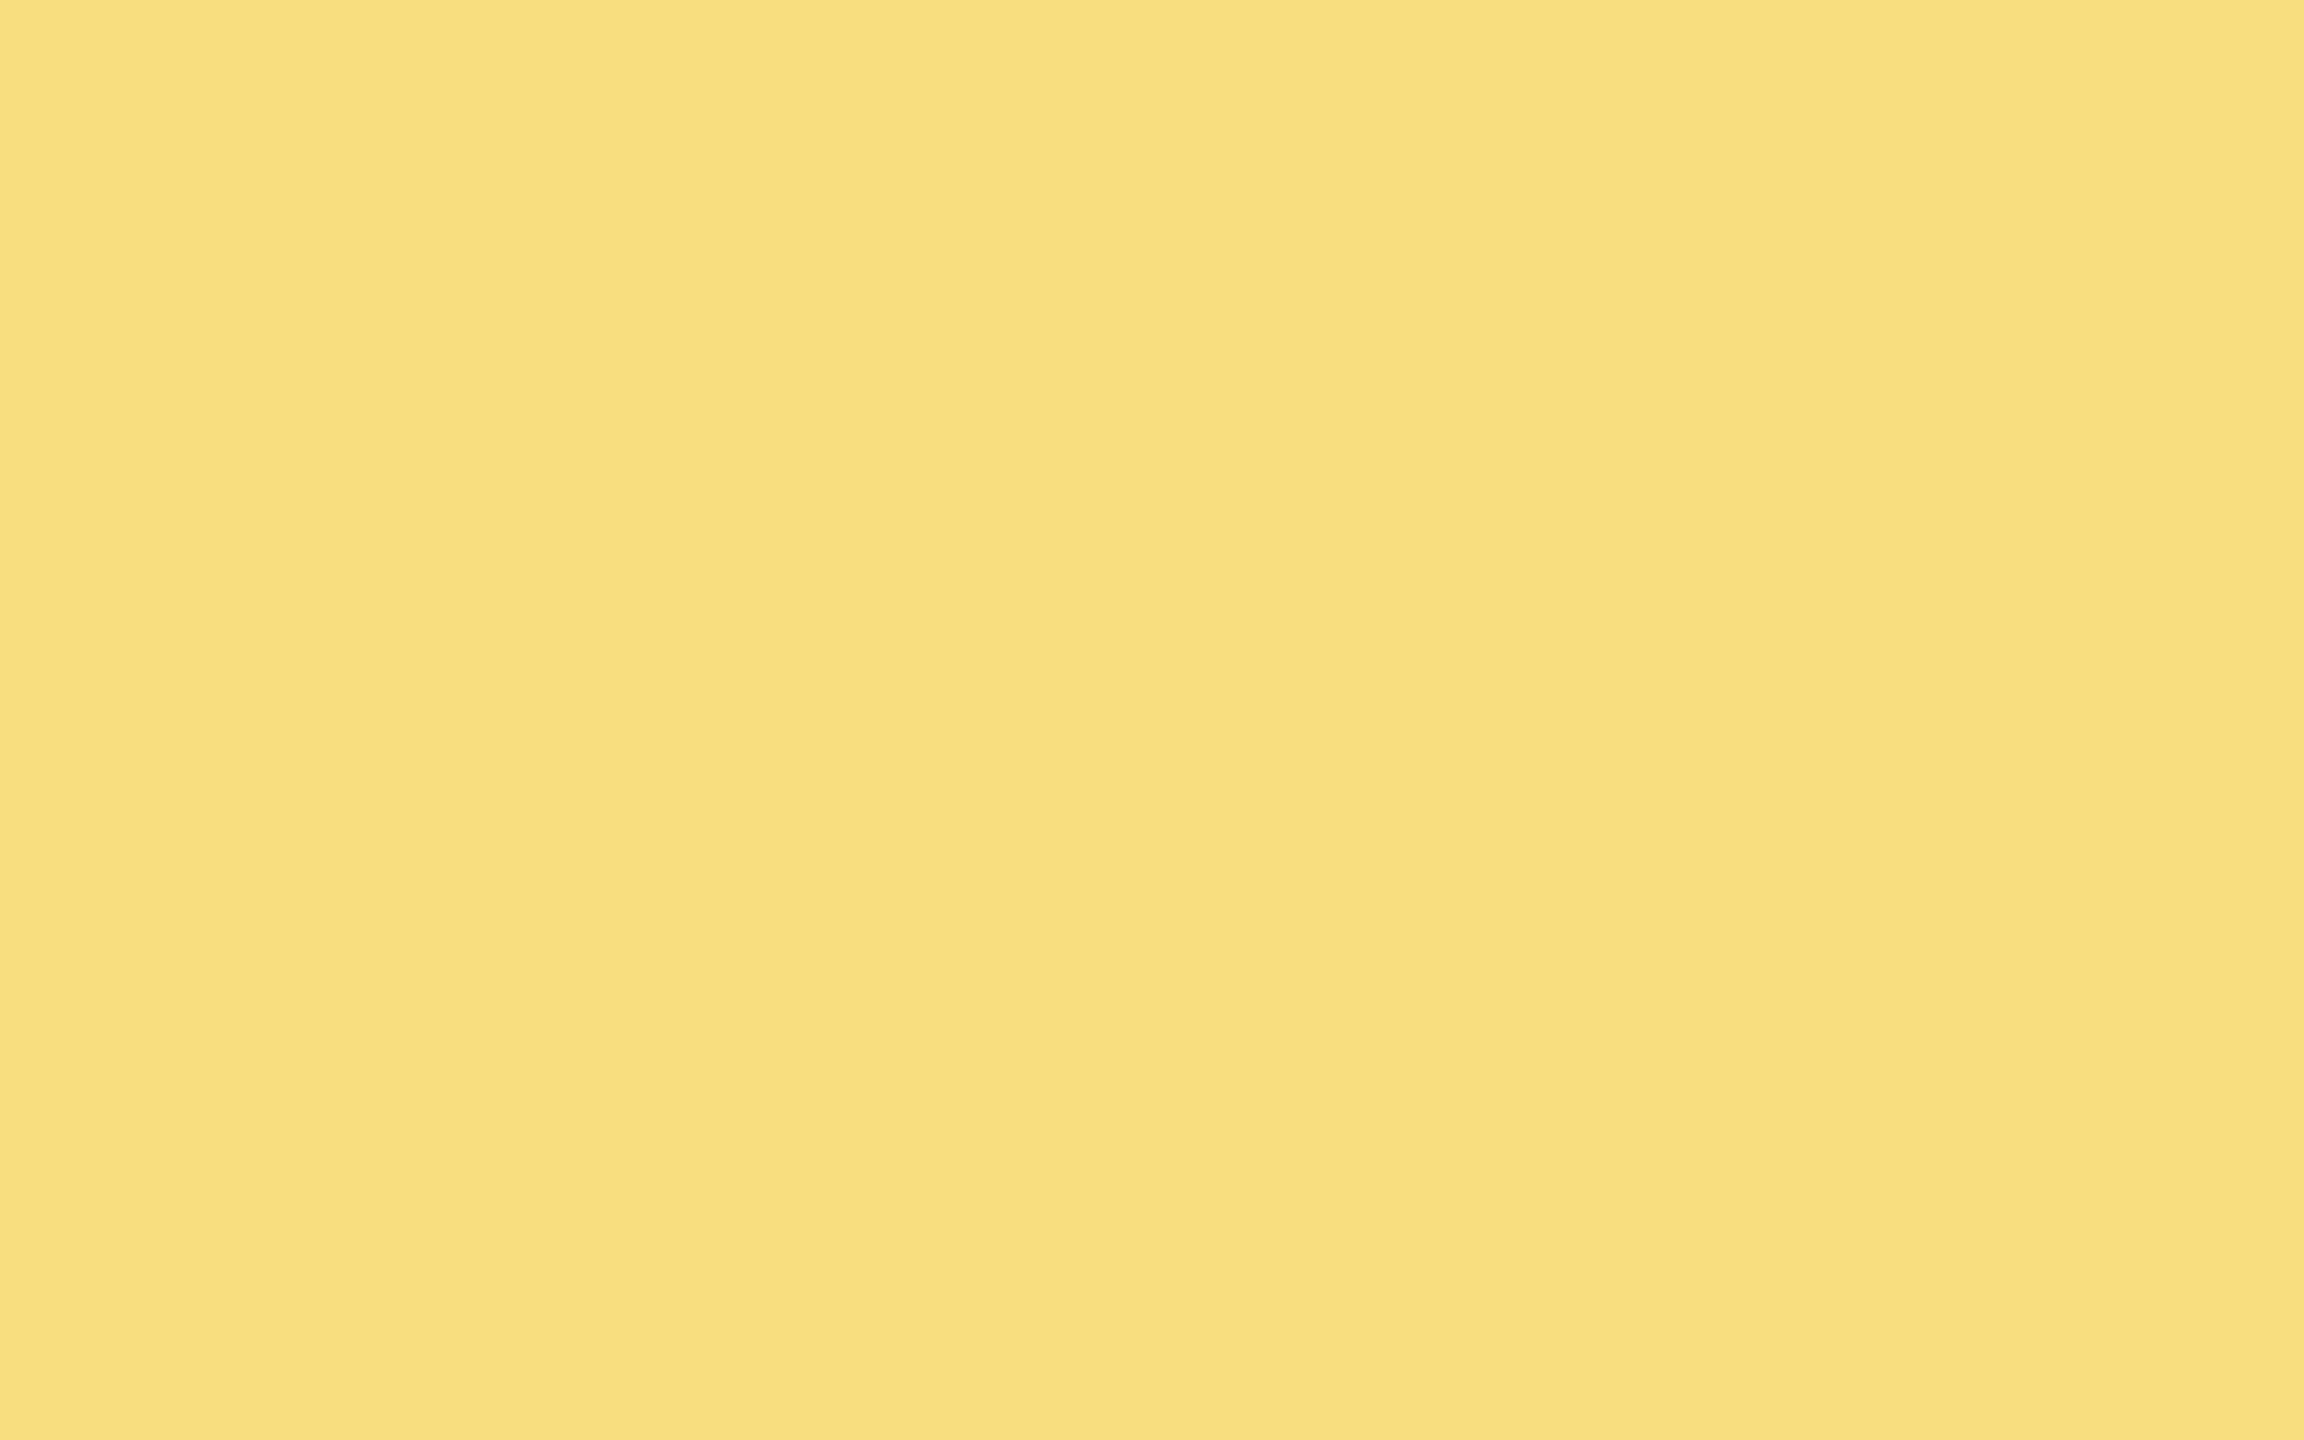 2304x1440 Mellow Yellow Solid Color Background